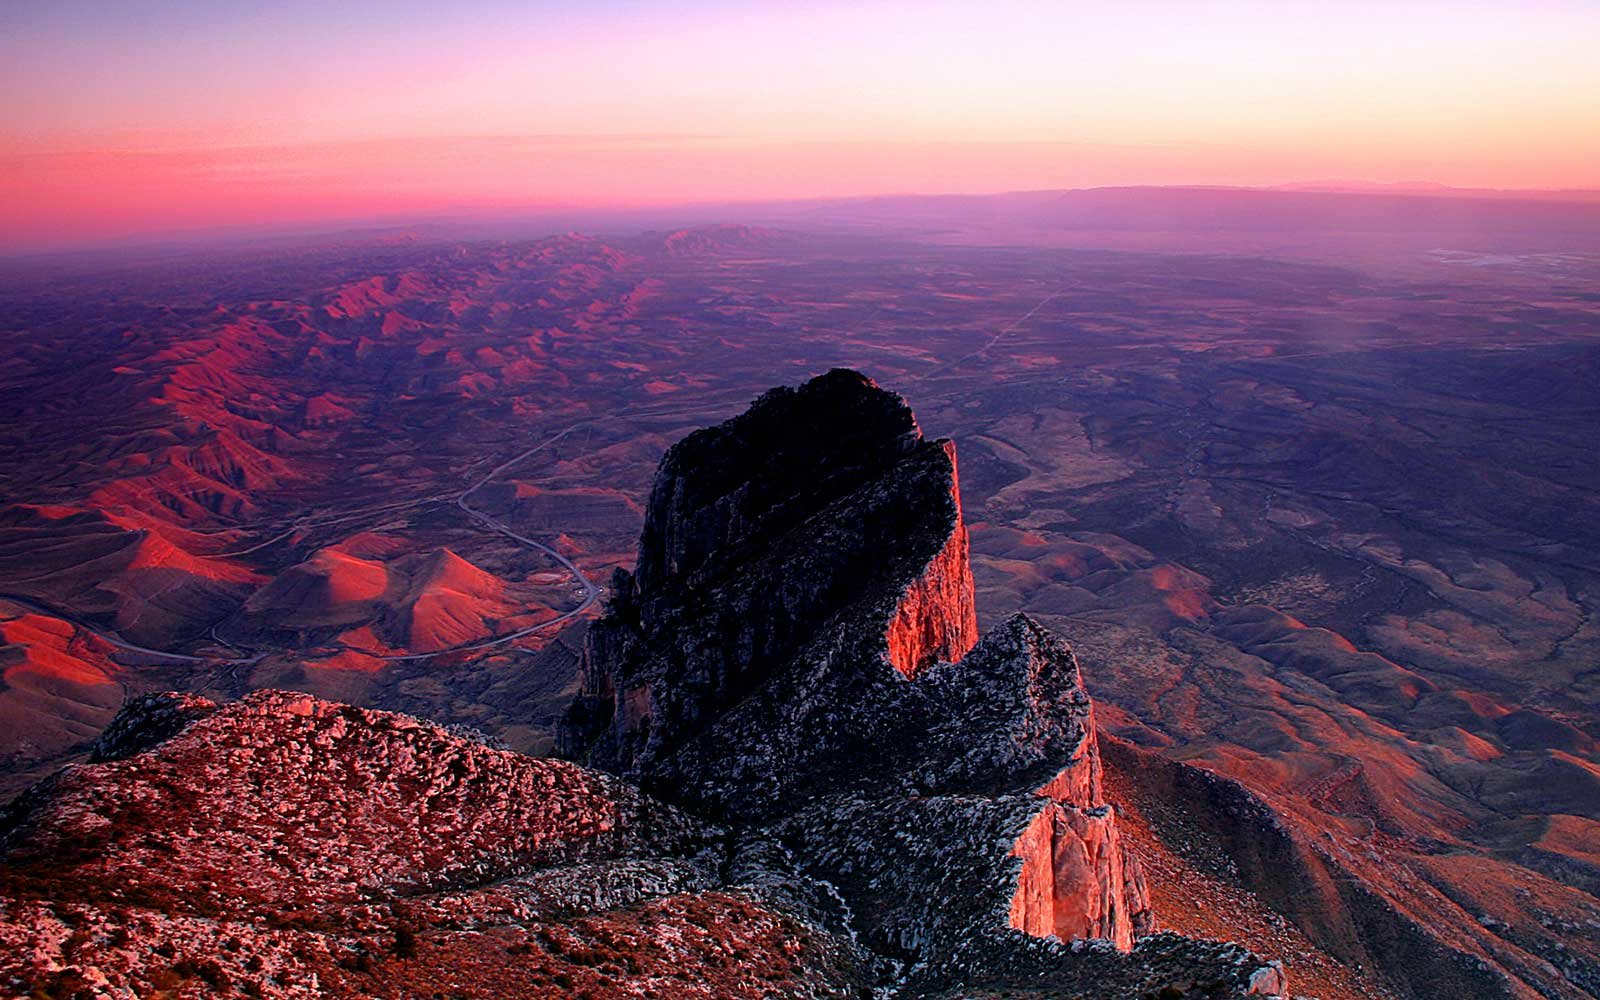 Clone of guadalupe-mountains-national-park-LEASTPARK0319.jpg